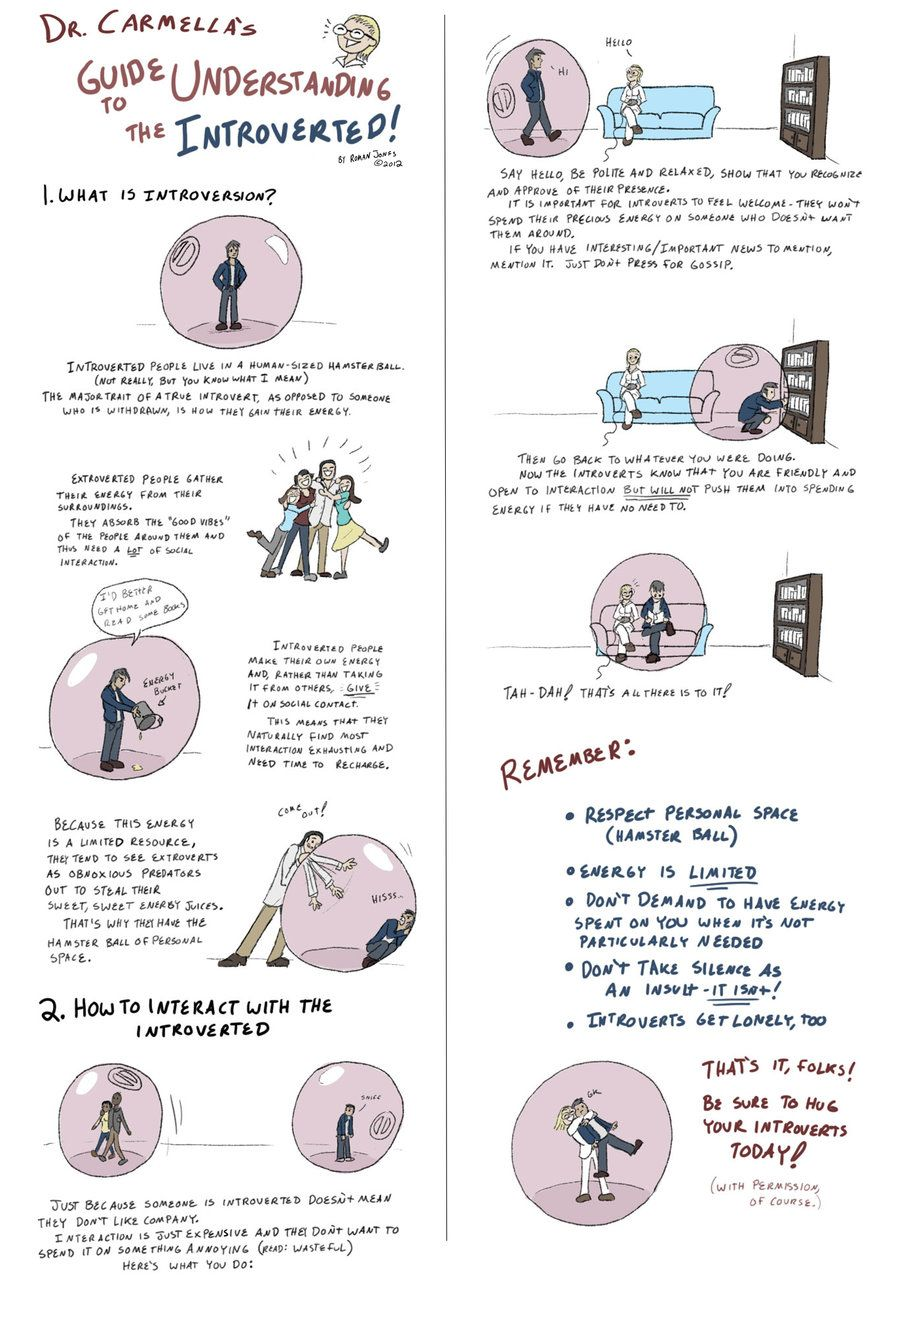 Guide introvert's to extrovert an dating